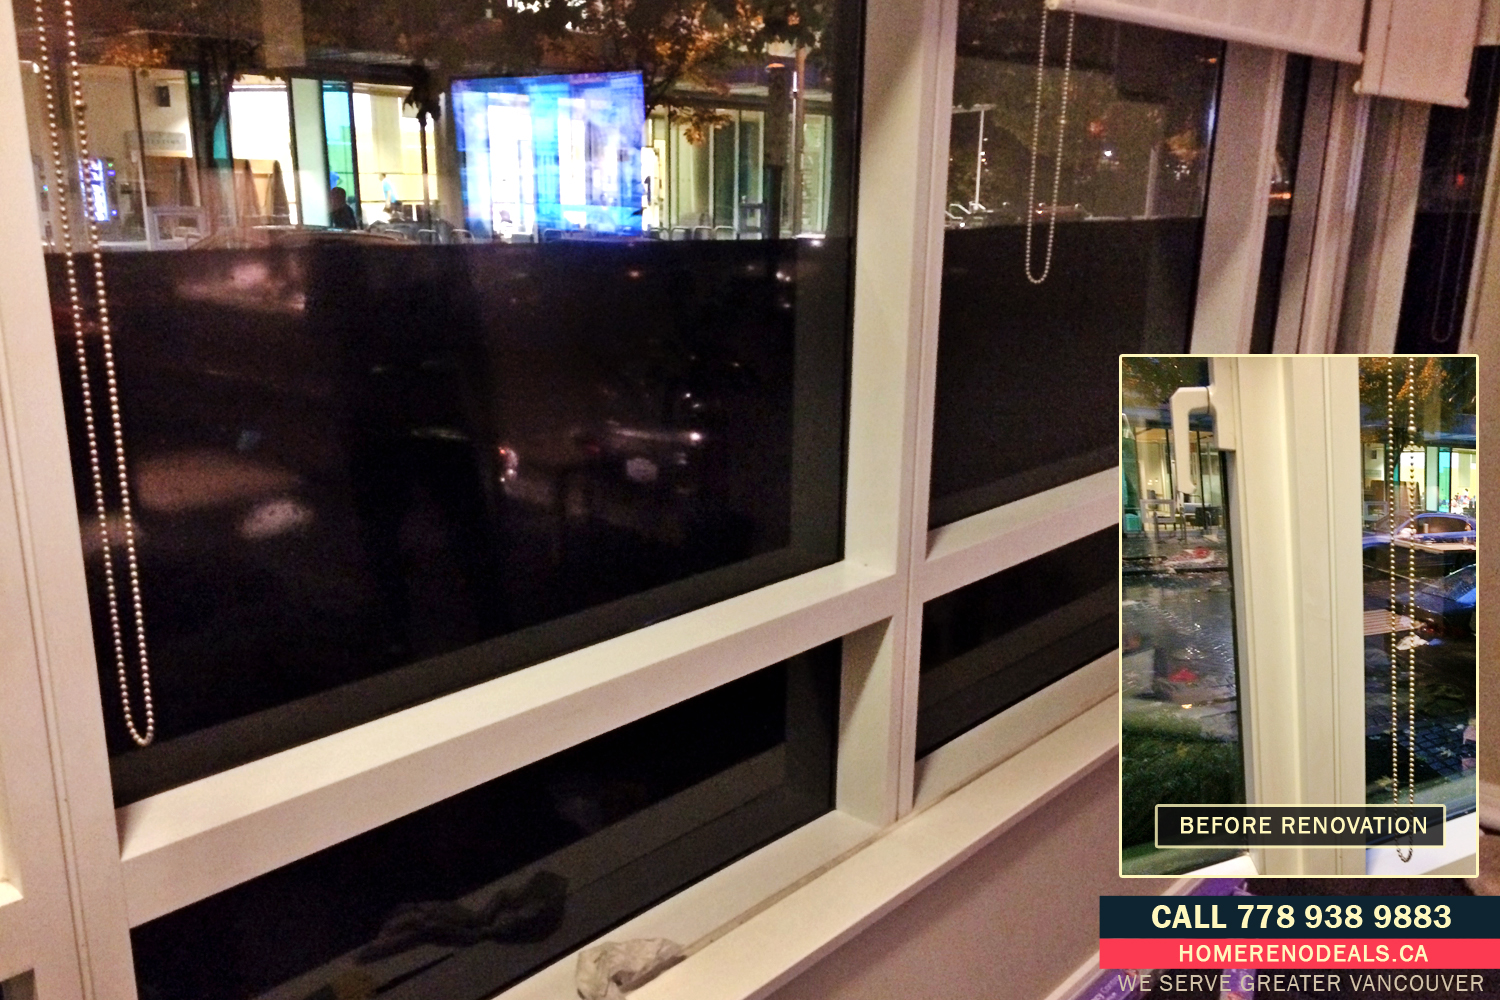 Handyman for Home Window Tinting with Decorative Film. Home Renovation Deals in Greater Vancouver, BC